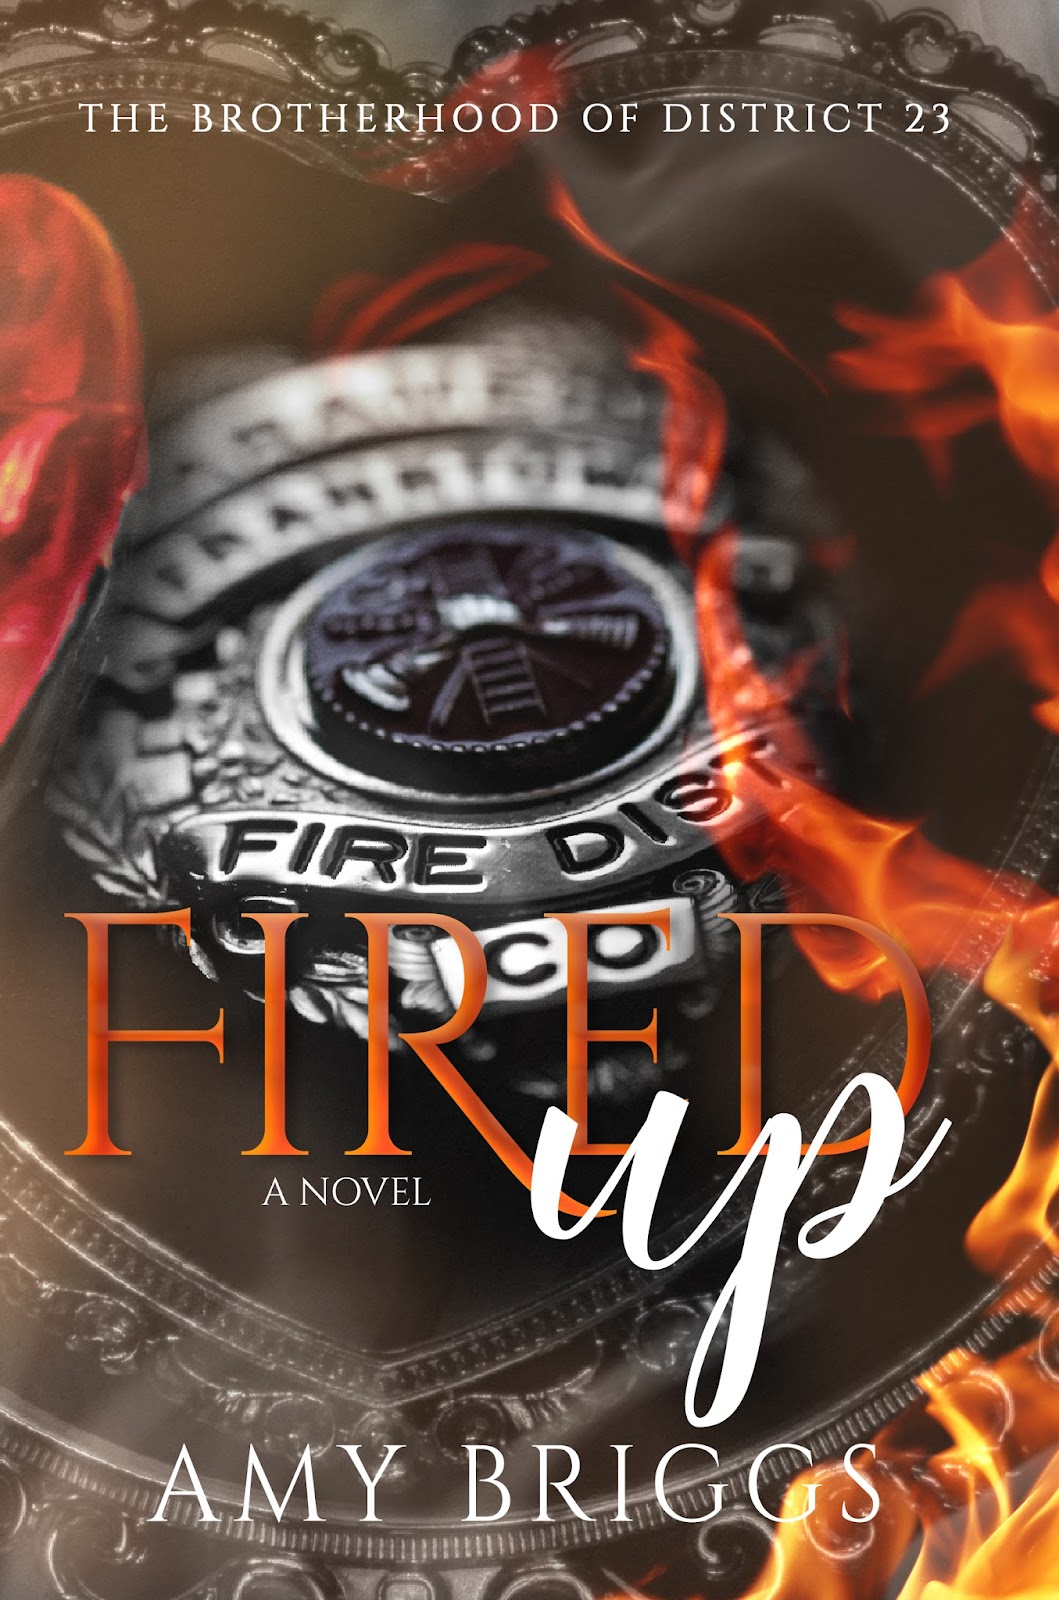 Fired Up - EBOOK COVER.jpg